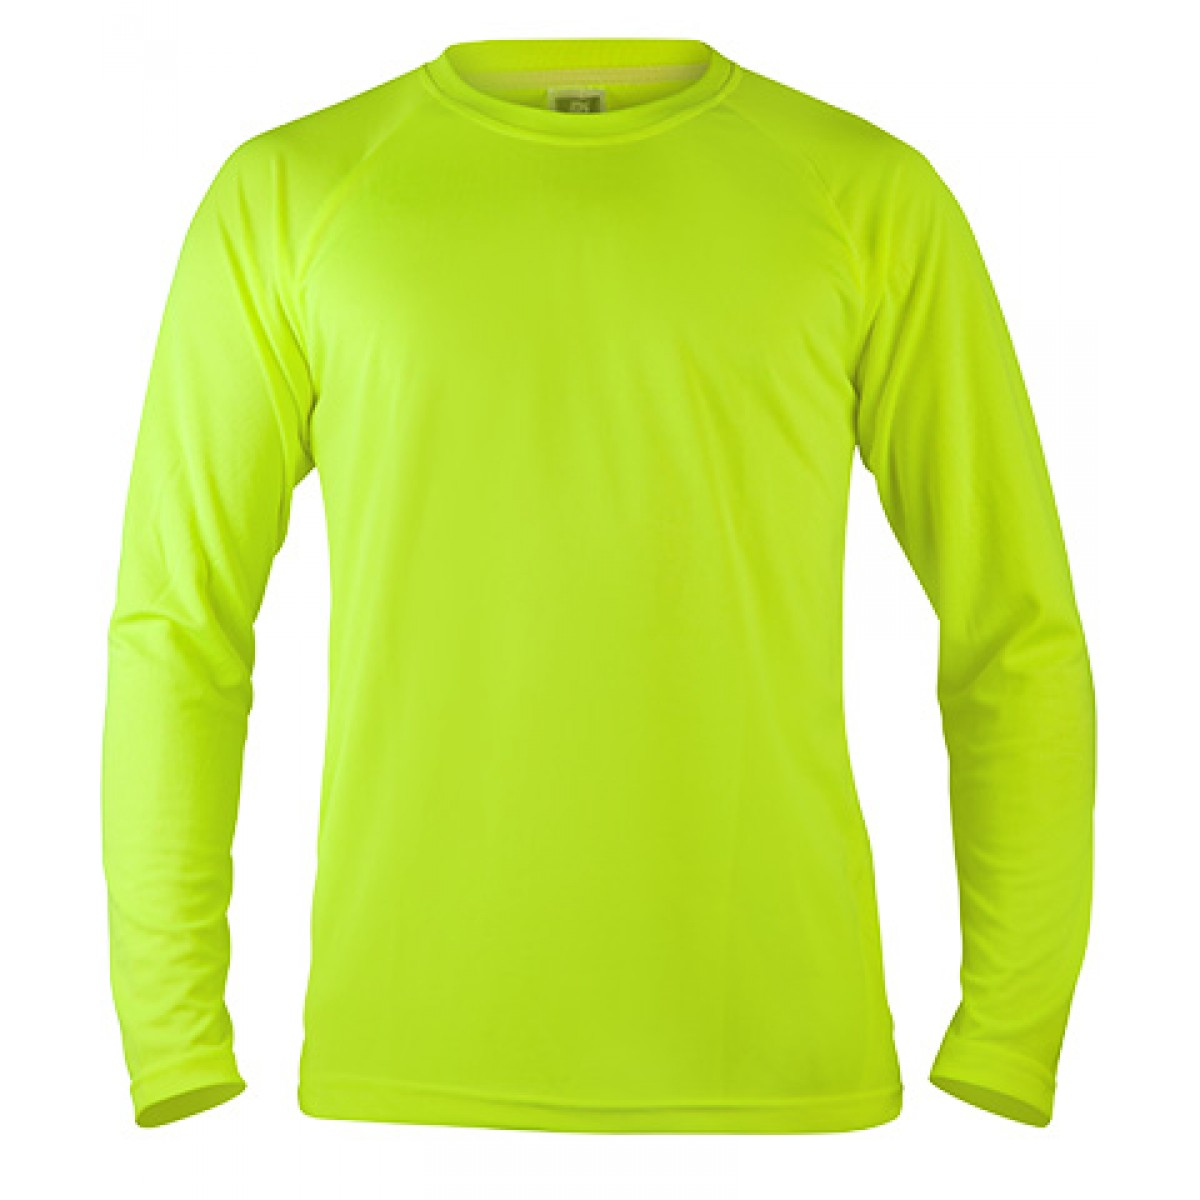 Long Sleeve Performance -Safety Green-XS